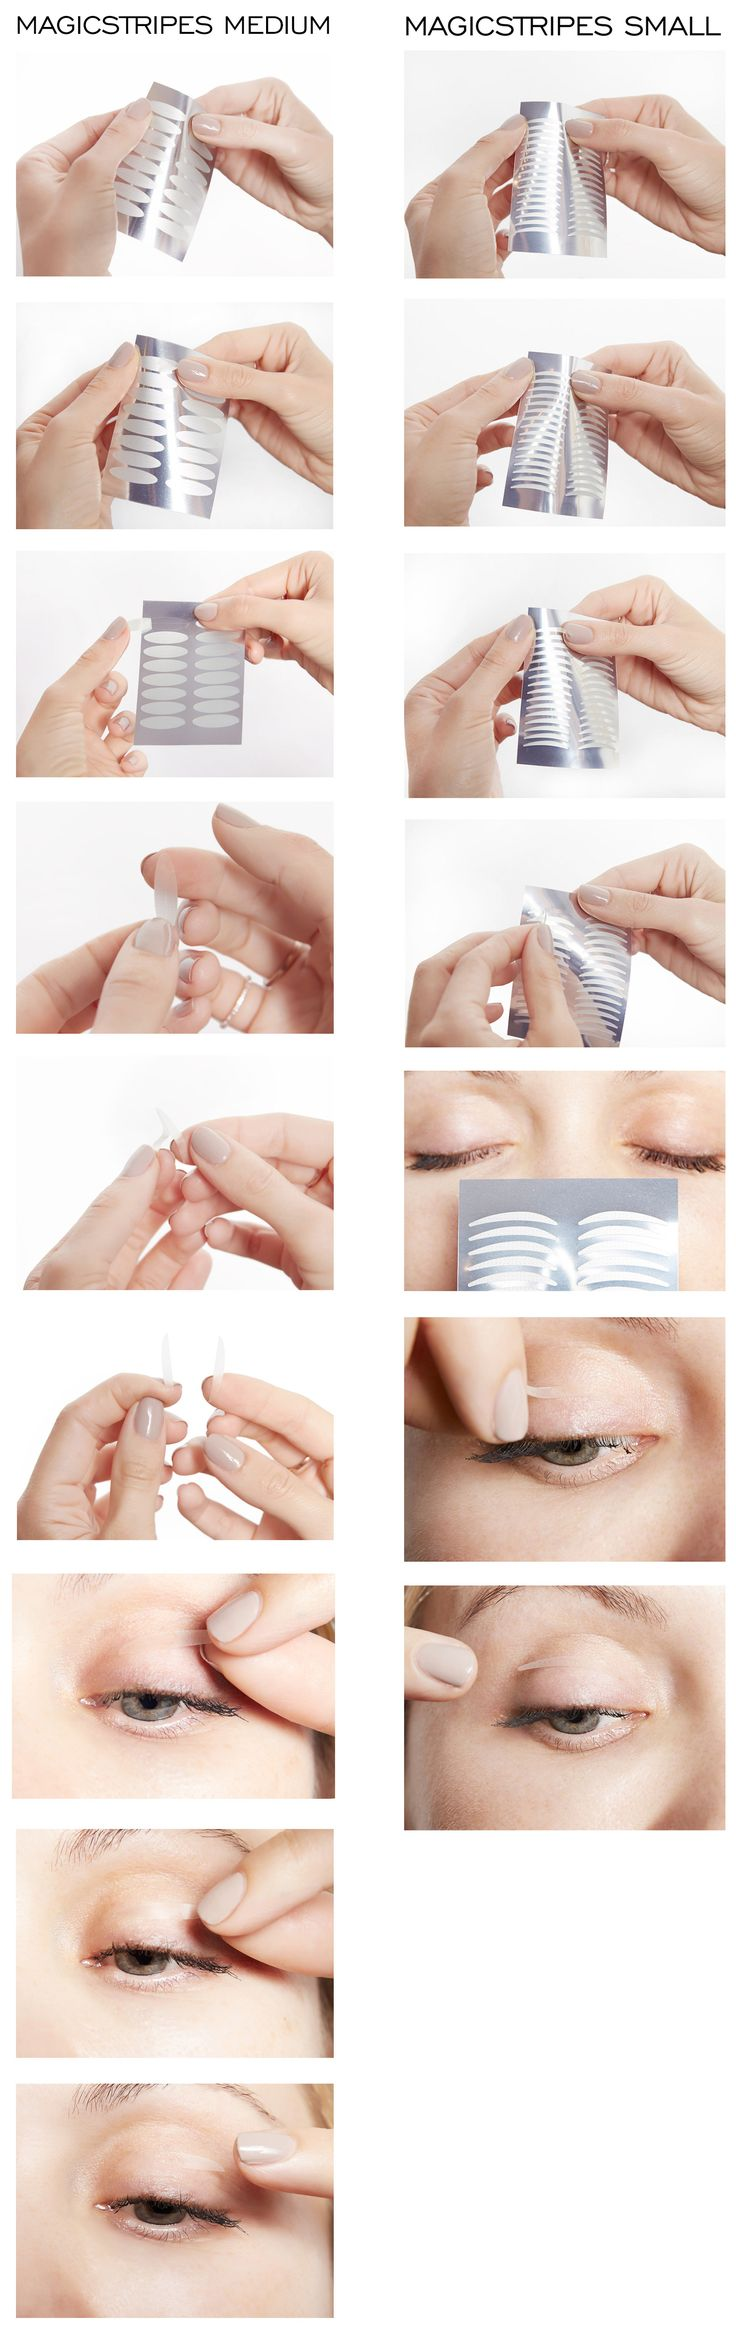 MAGICSTRIPES can be used by all women of all ages. Especially with droopy eyelids, tired, small eyes or drooping eyelids you can achieve great results!